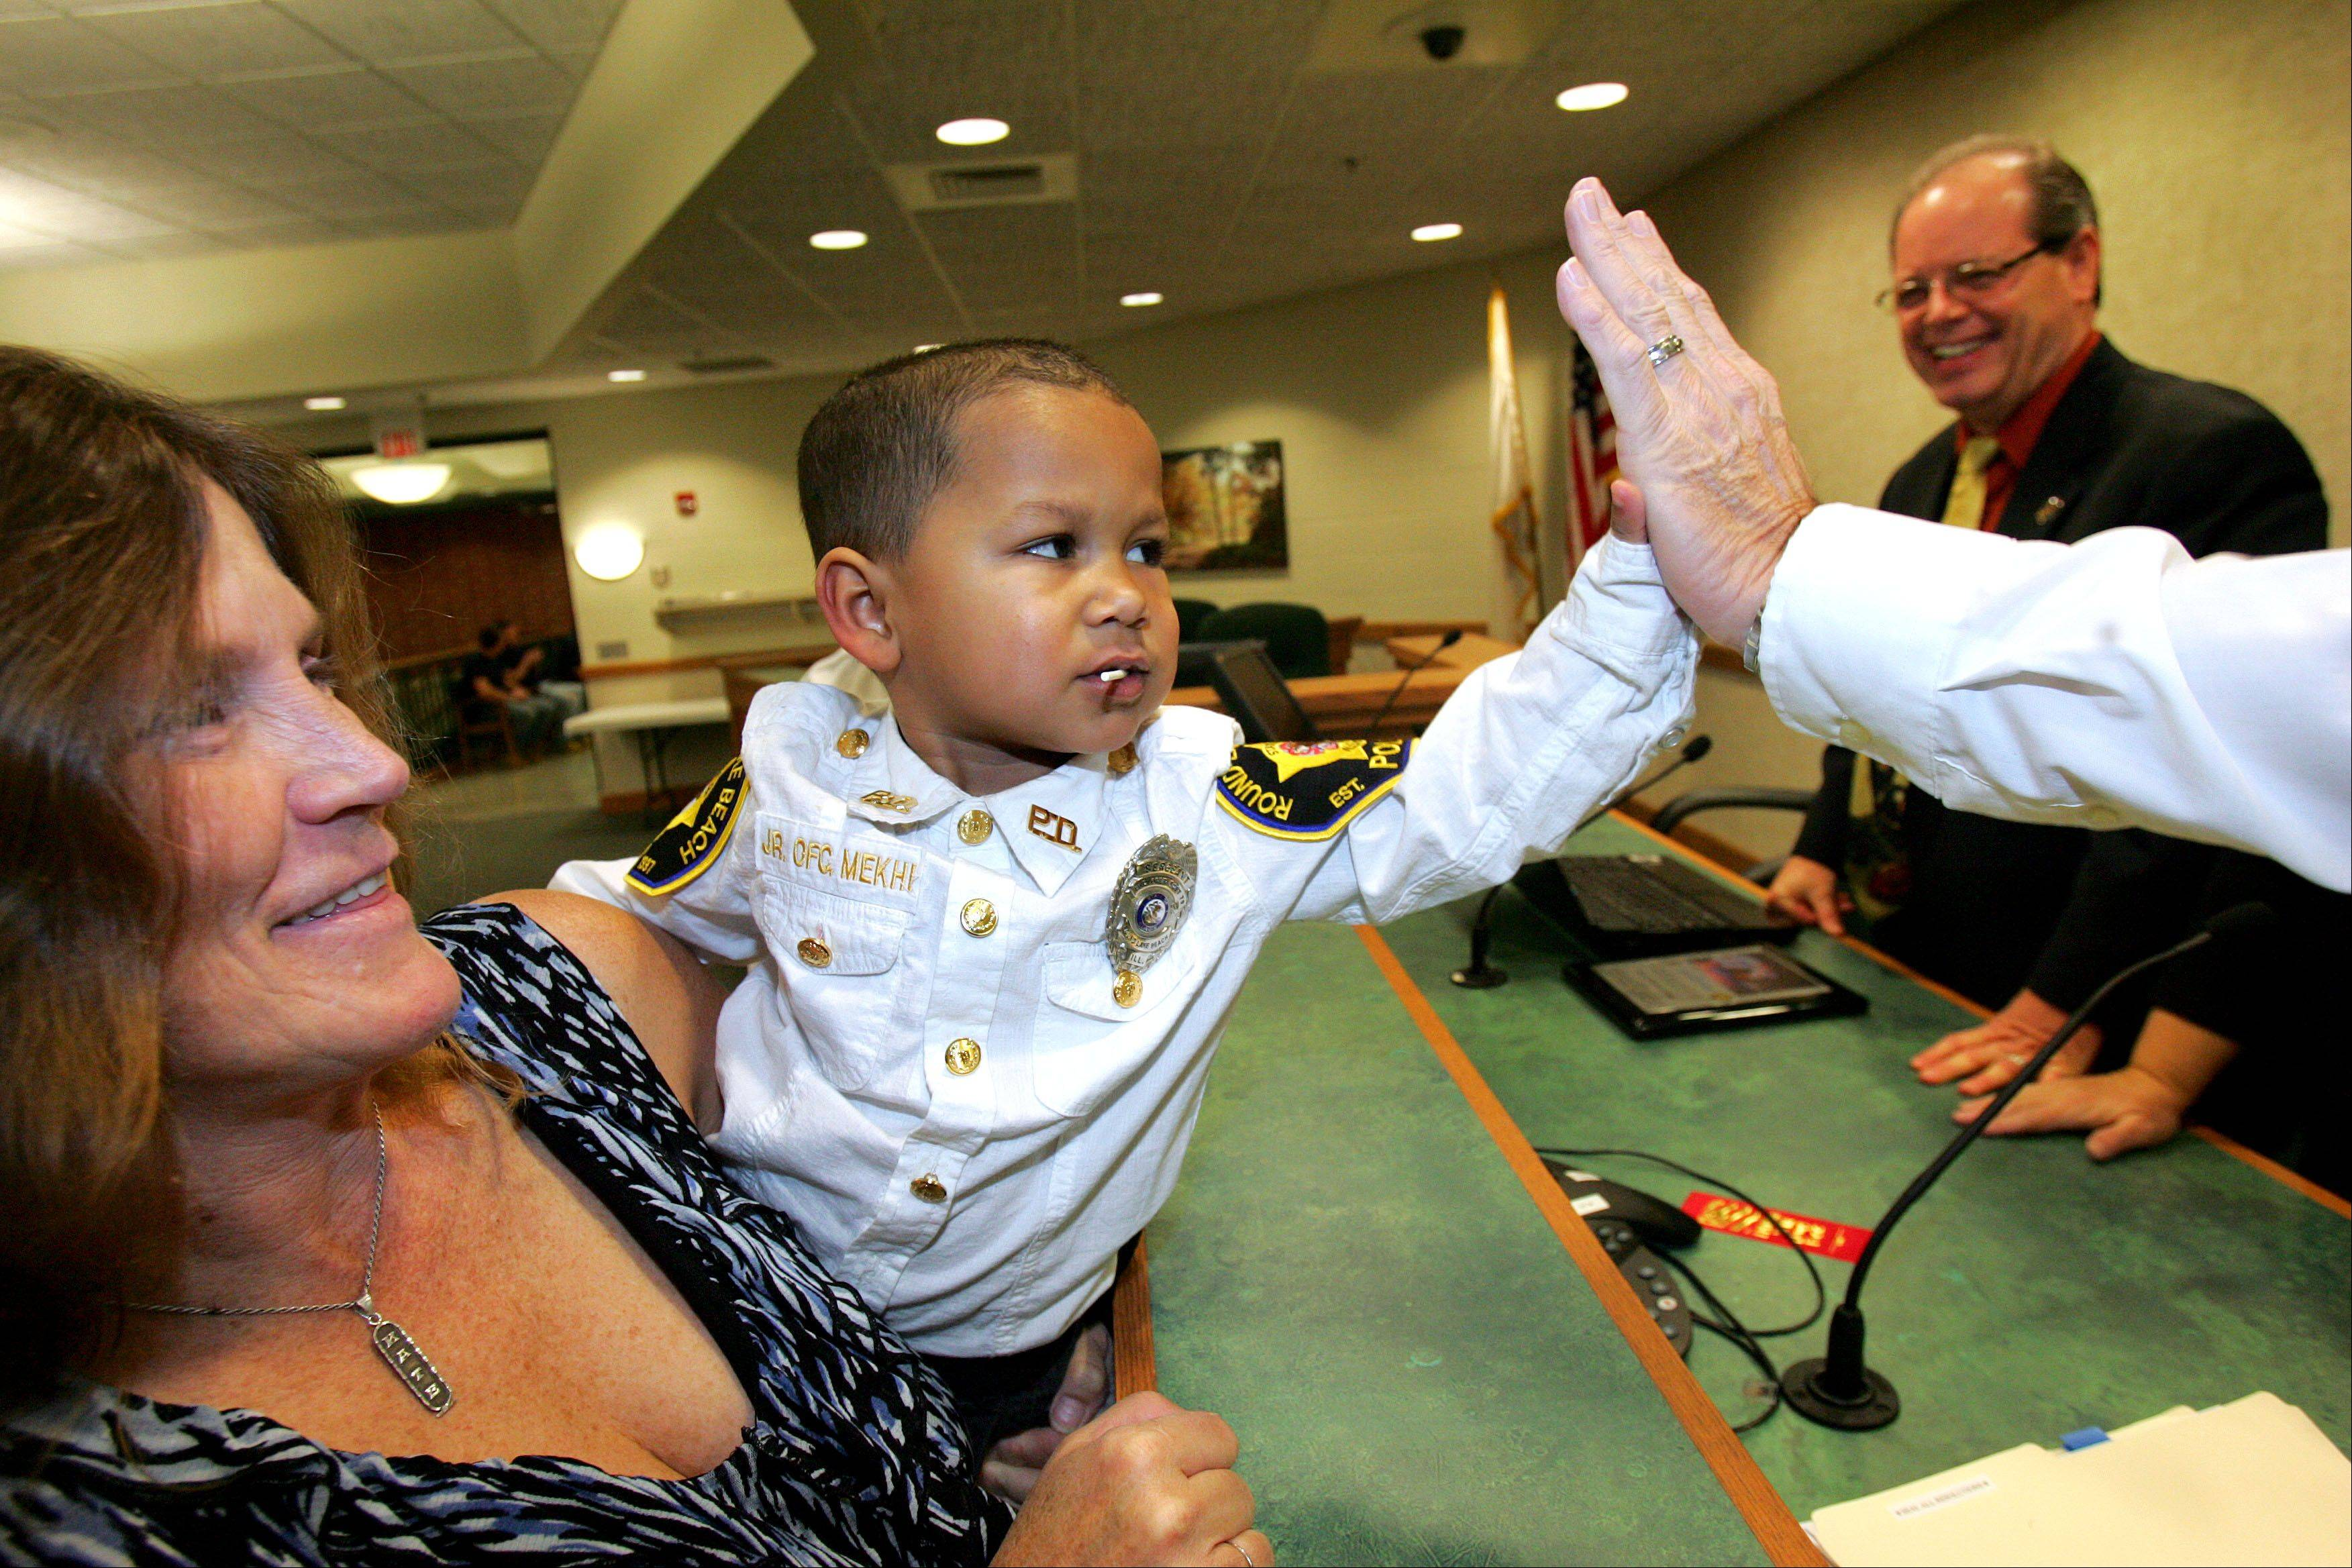 Mekhi Carter is held by his grandmother, Katie Hoftender, as he high-fives members of the Round Lake Beach village board. The 3�-year-old Antioch Township boy was recognized by village officials as a Junior Round Lake Beach Police Officer as a wish enhancement in conjunction with the Make-A-Wish foundation.